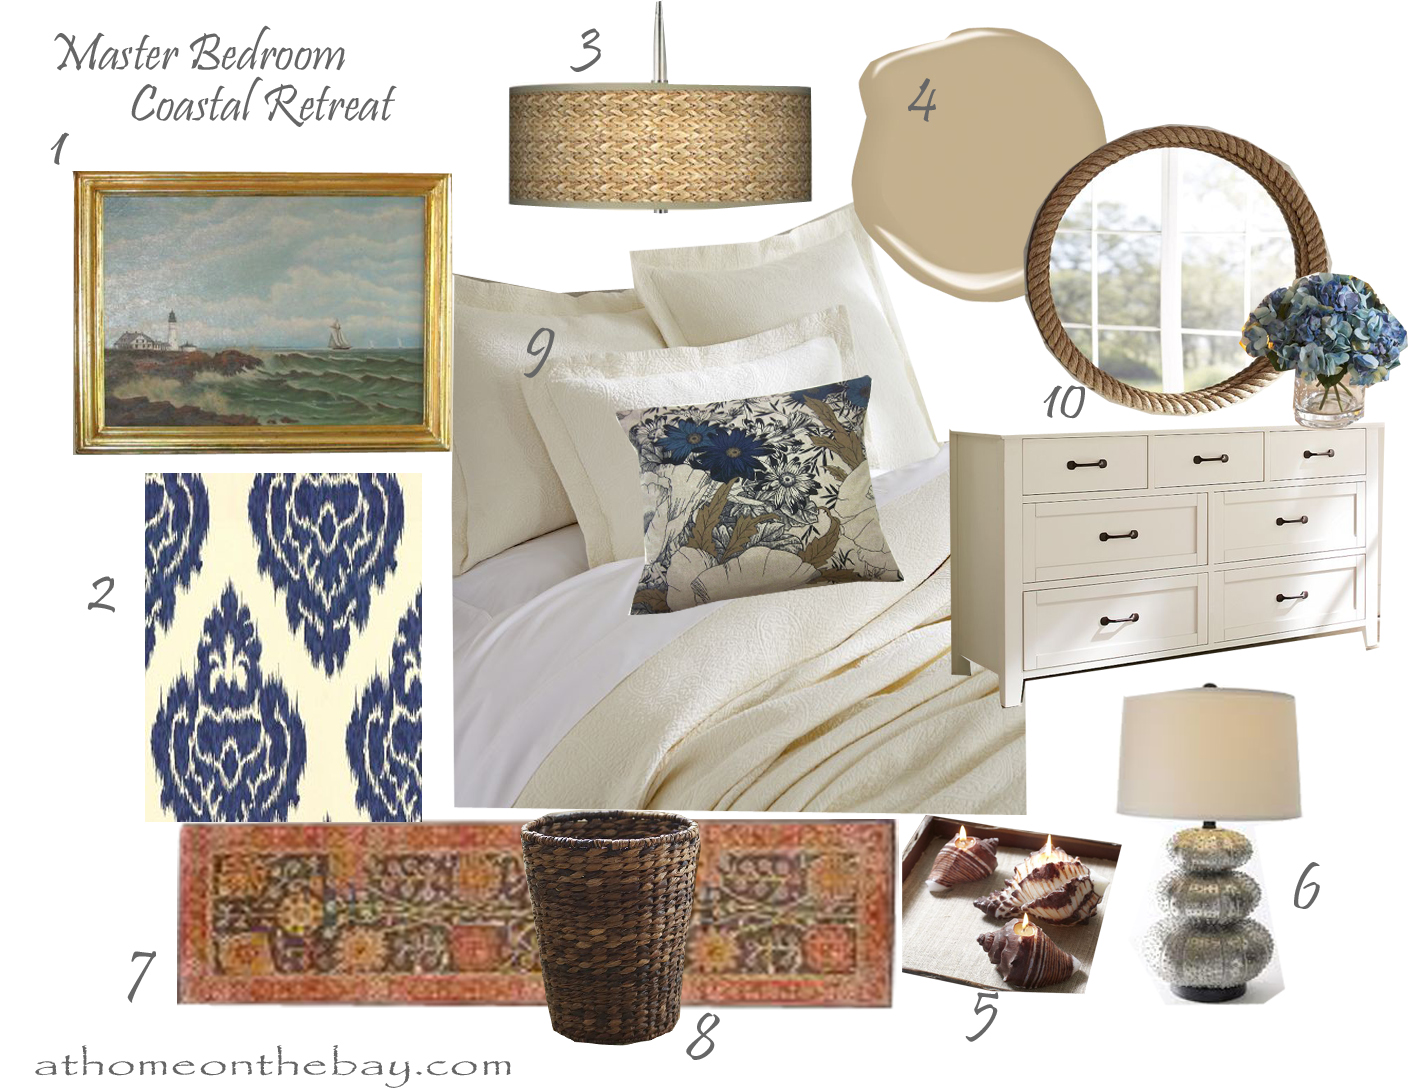 Design Board: Master Bedroom - At Home on the Bay